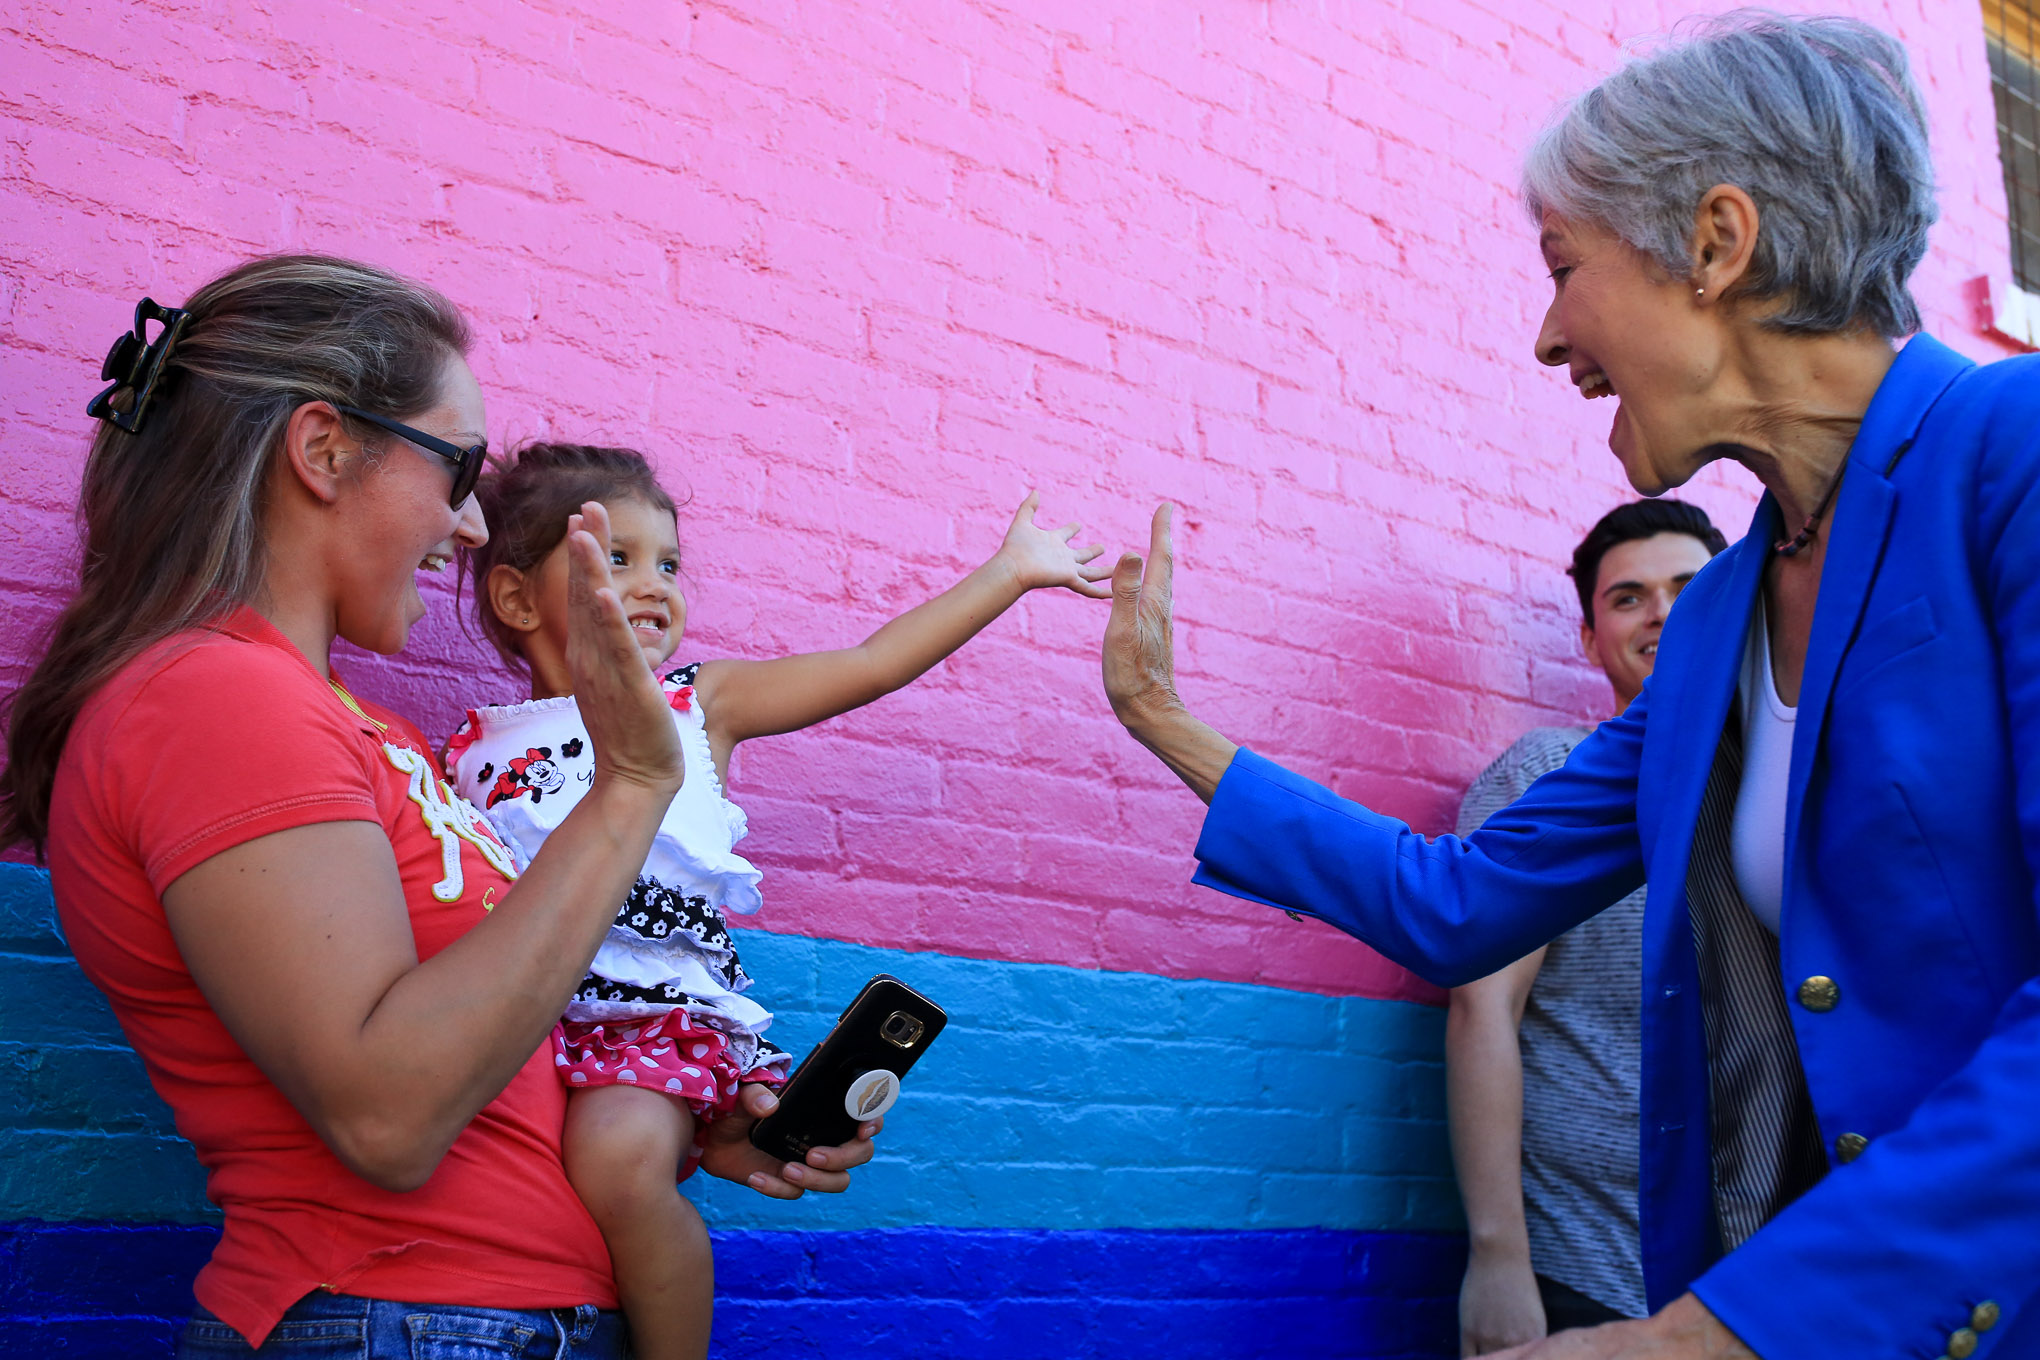 Green Party Presidential Candidate Dr. Jill Stein meets and greets Brandy Nealey and her daughter Olivia, 2 years old as Stein arrives to the event.